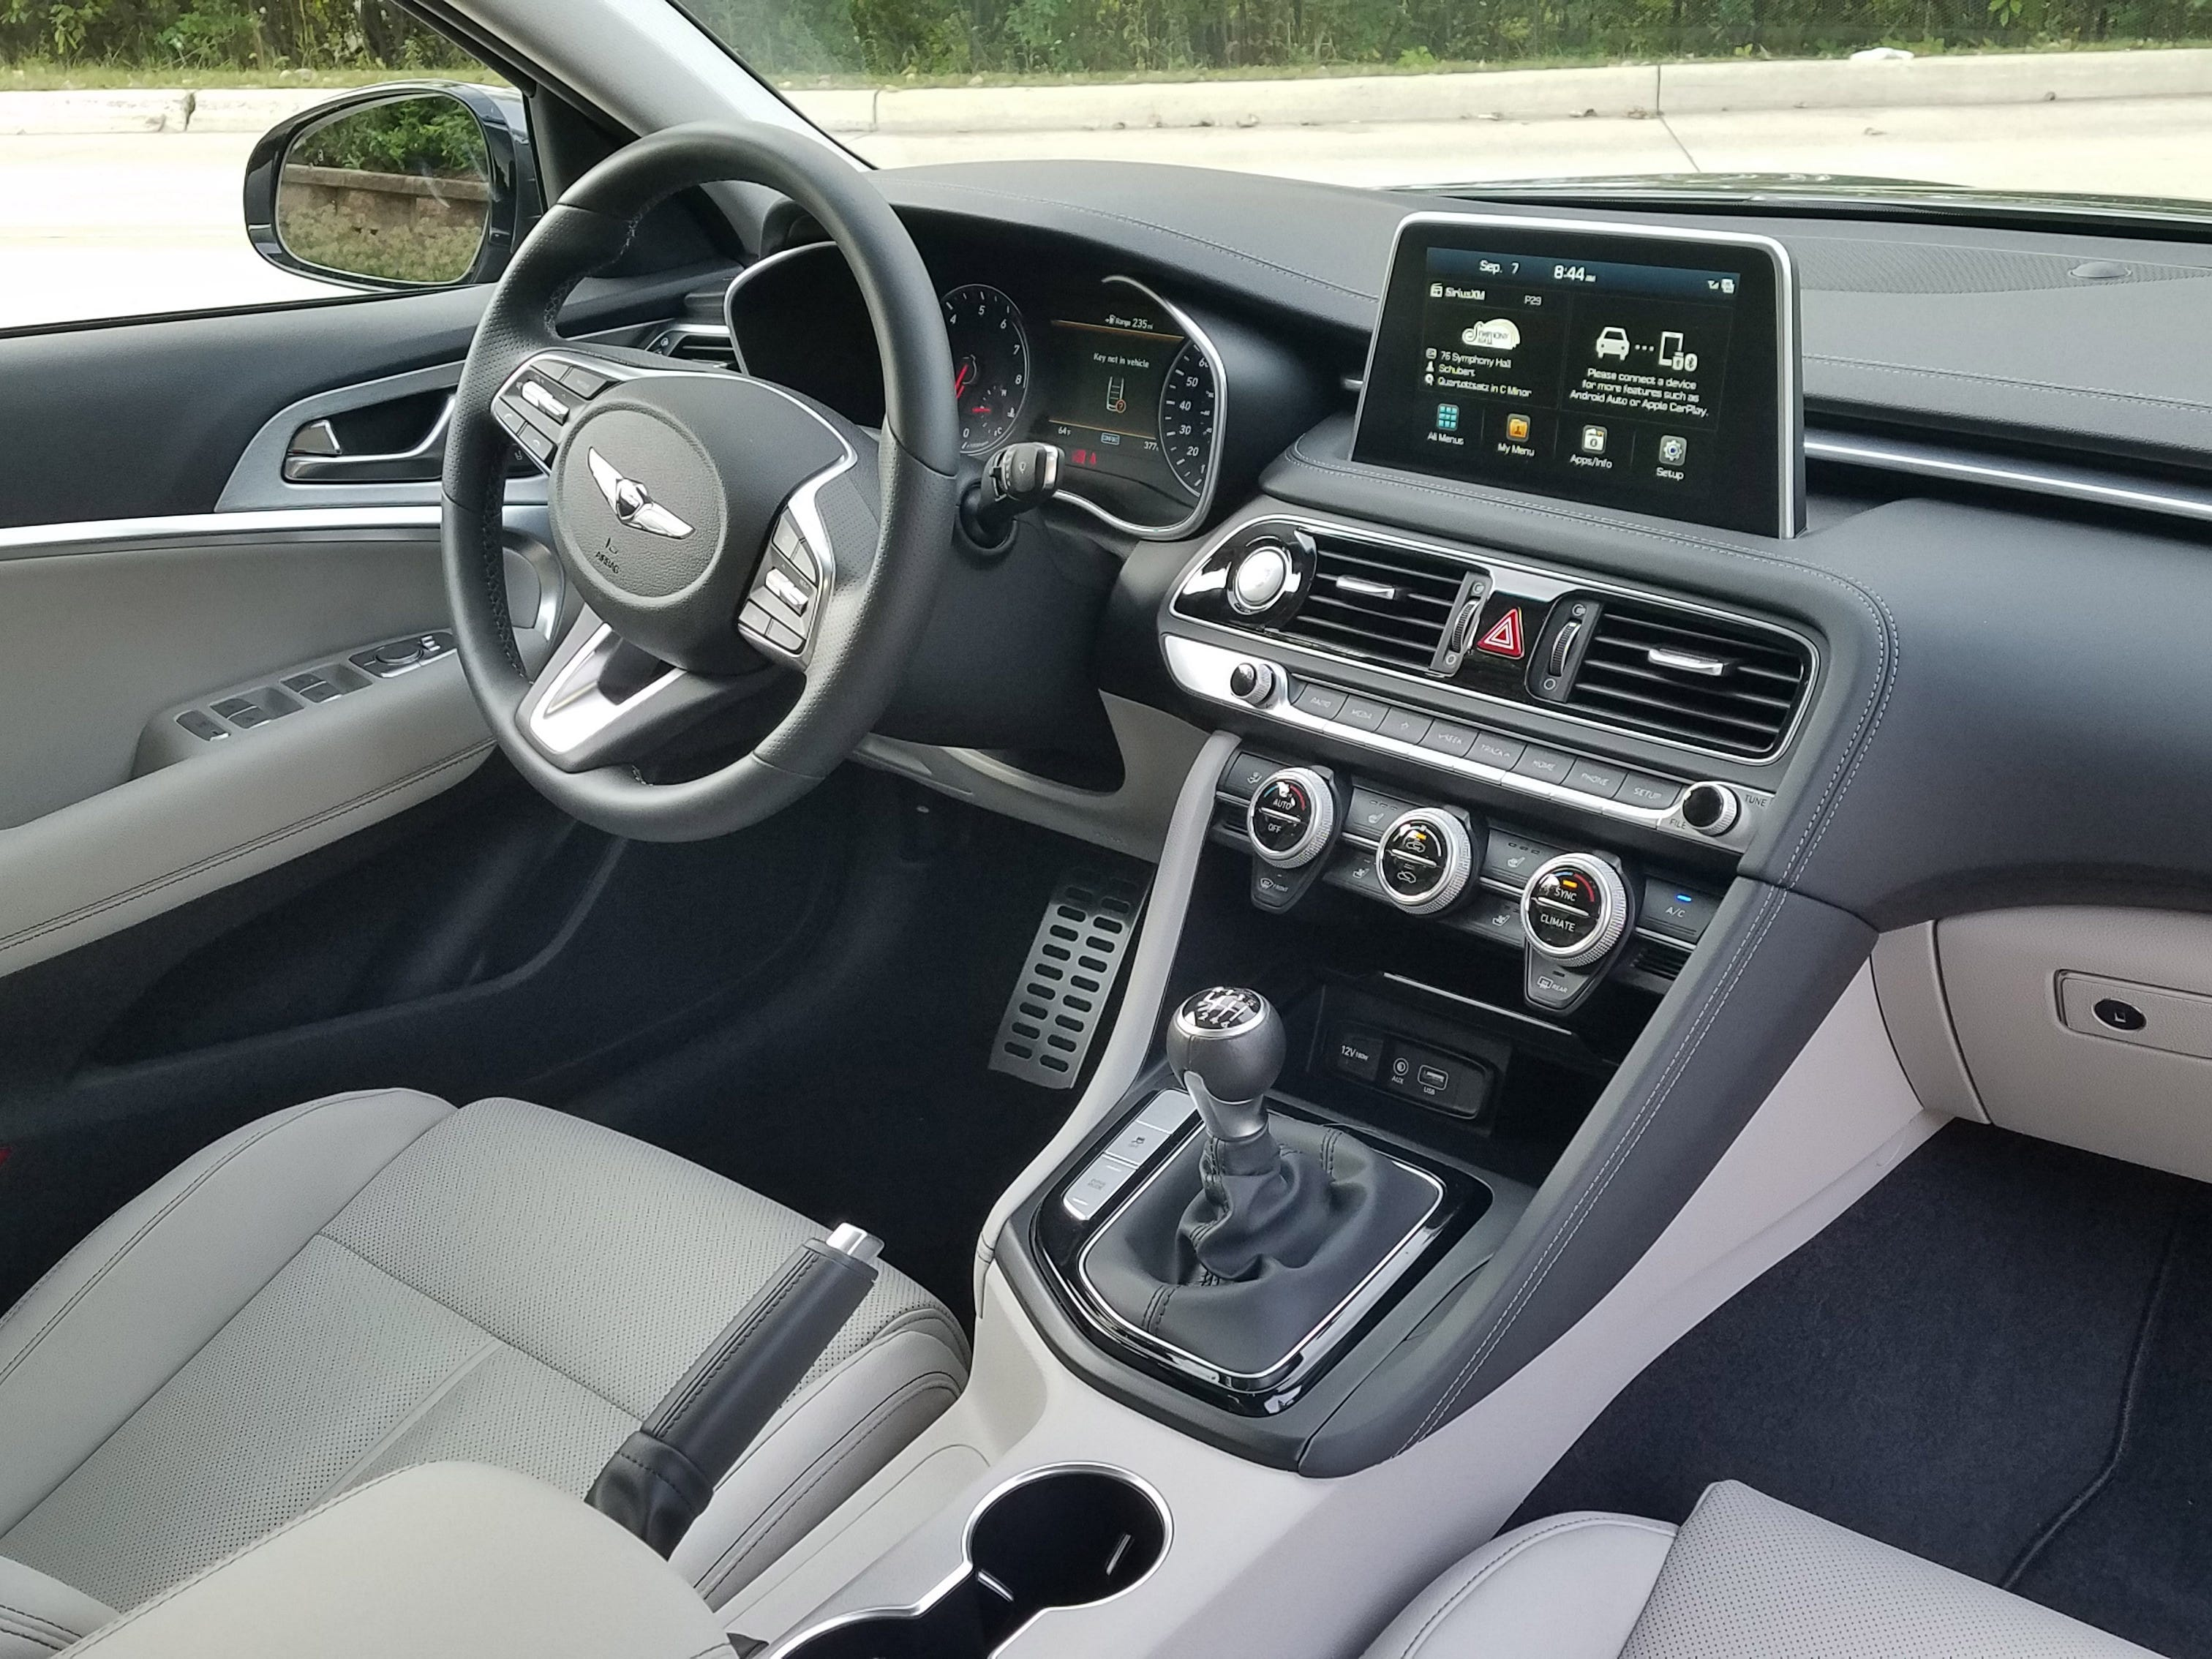 The manual is dead, long live the manual. The 2019 Genesis G70 offers a Sport model that is exclusively equipped with a 6-speed manual transmission. The car is a ball to drive fast - but most owners will opt for the smooth, 8-speed auto tranny.